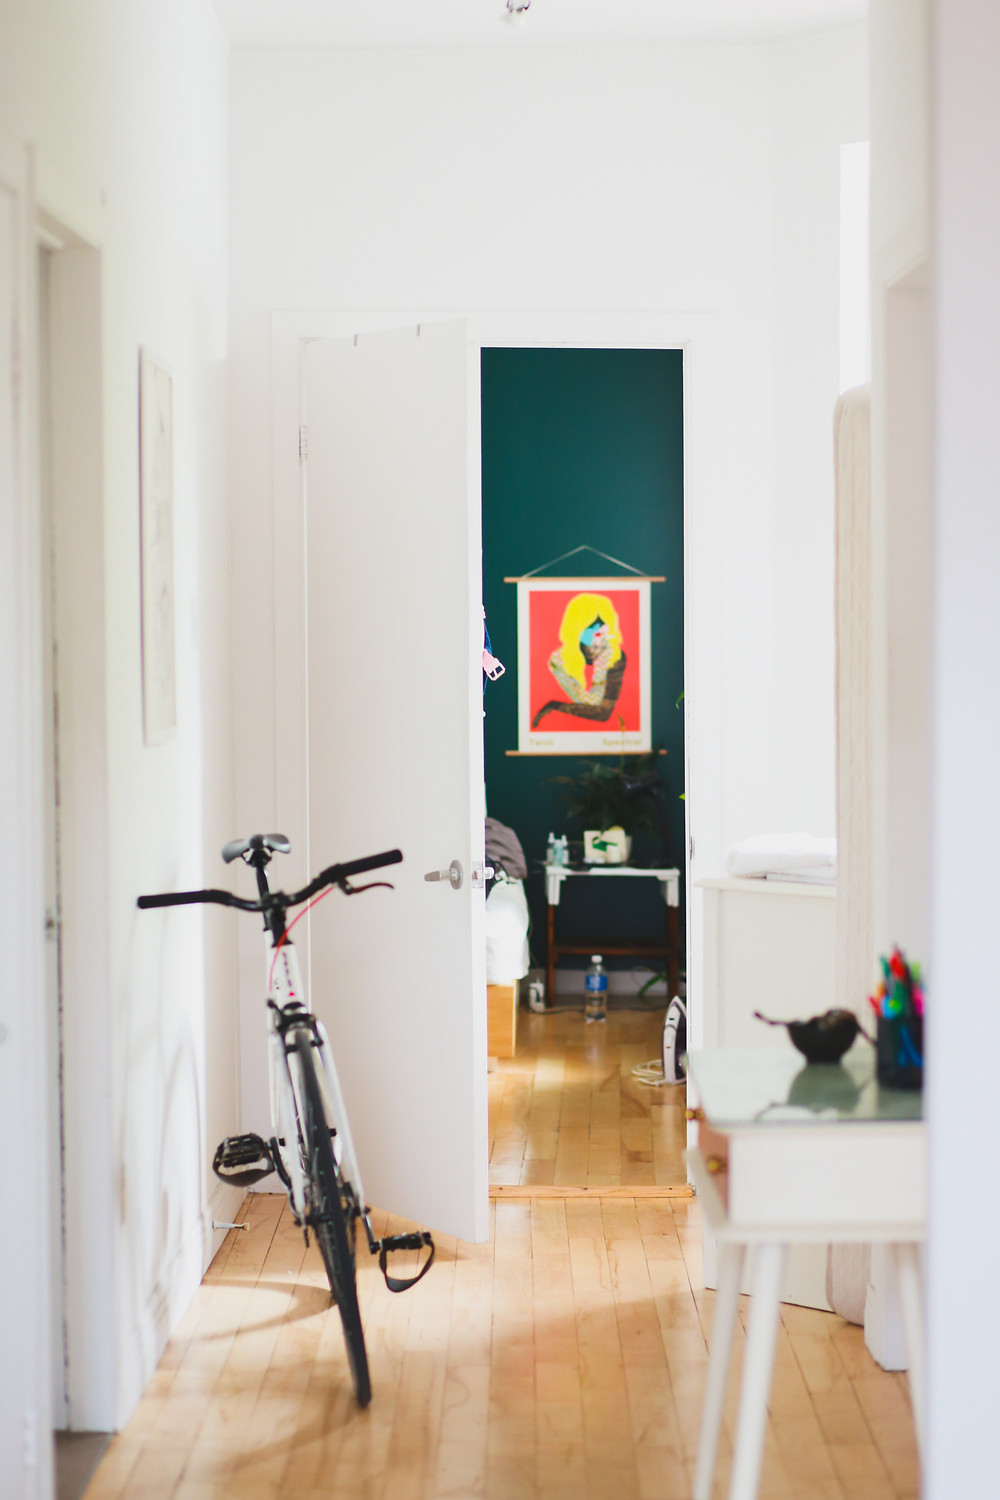 An entryway with a bike, small side table and minimal decor.